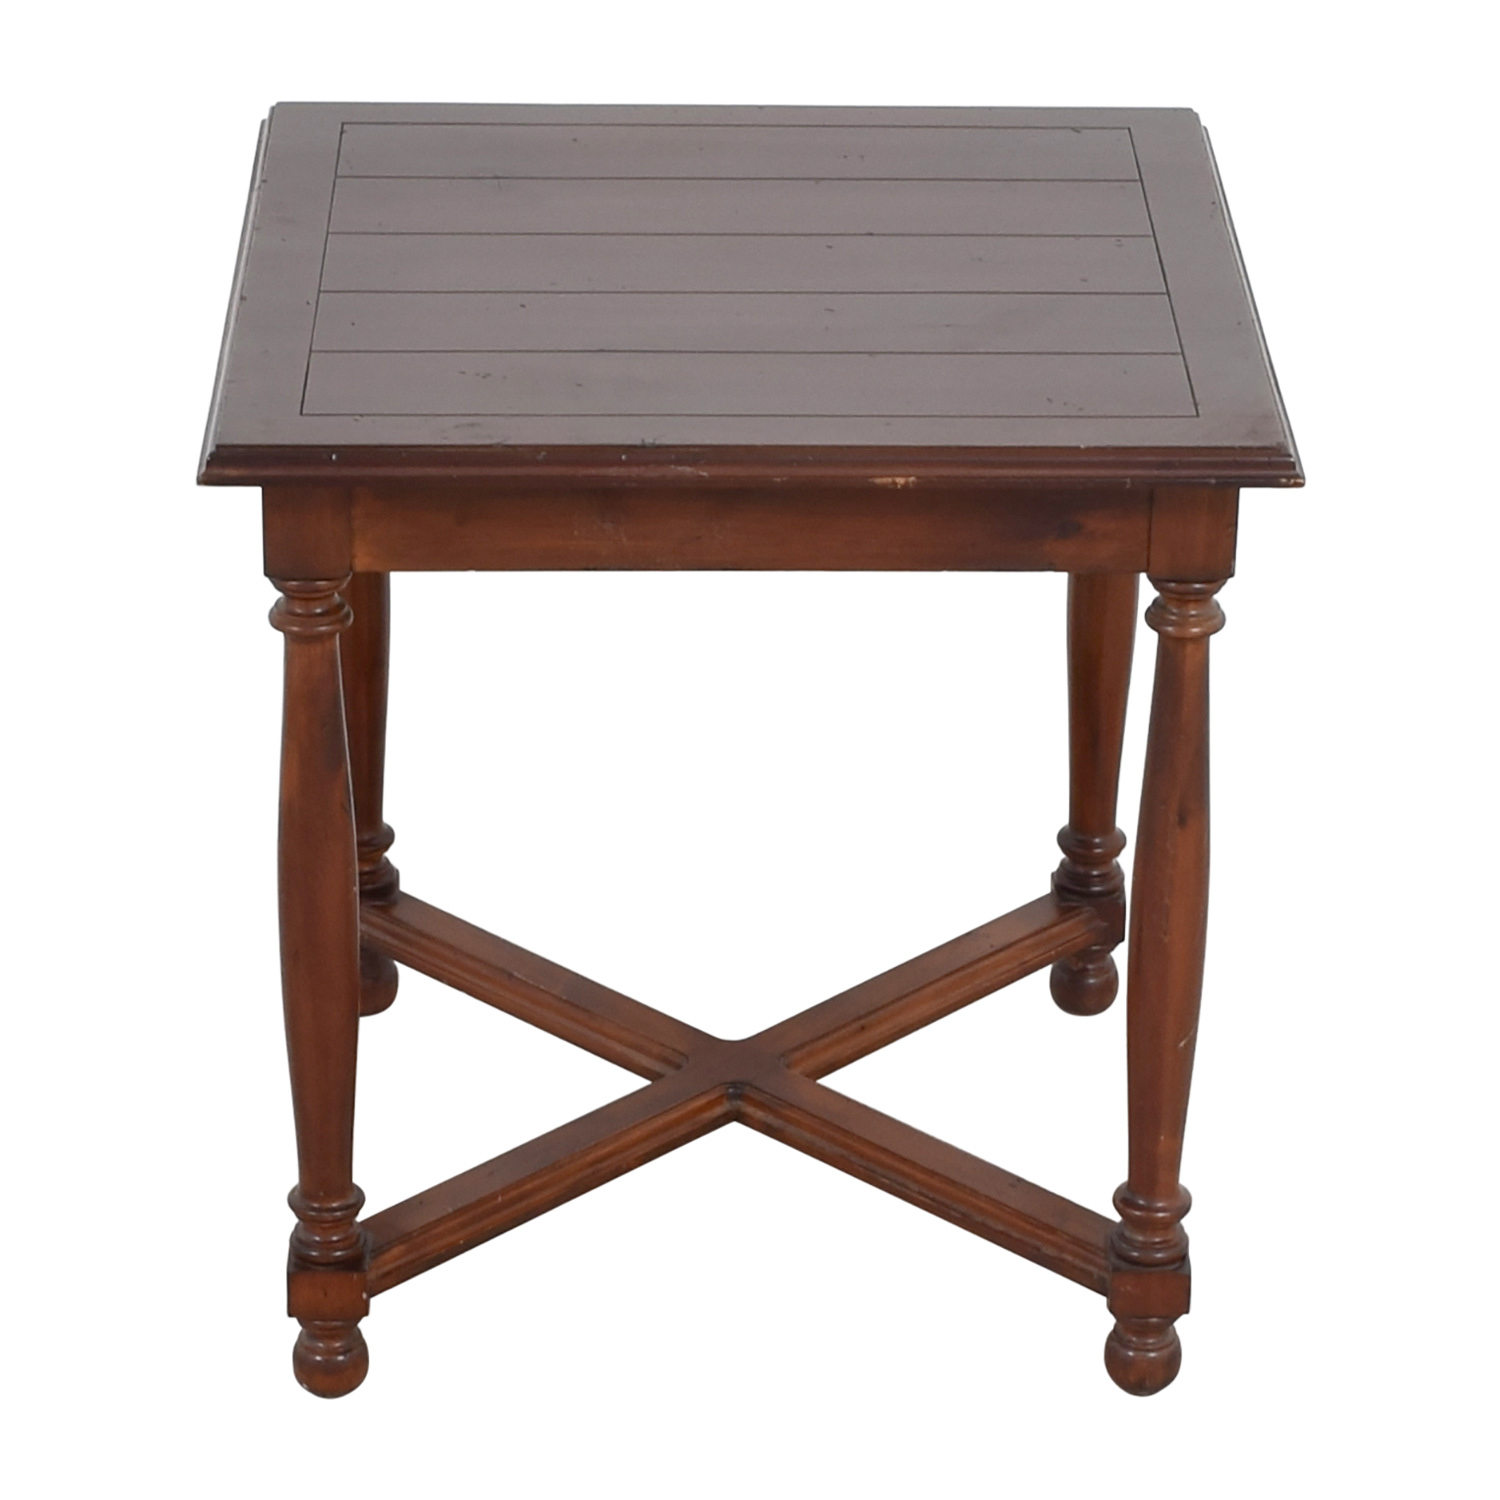 Furniture Masters Furniture Masters Crossed Base End Table Dark Cherry